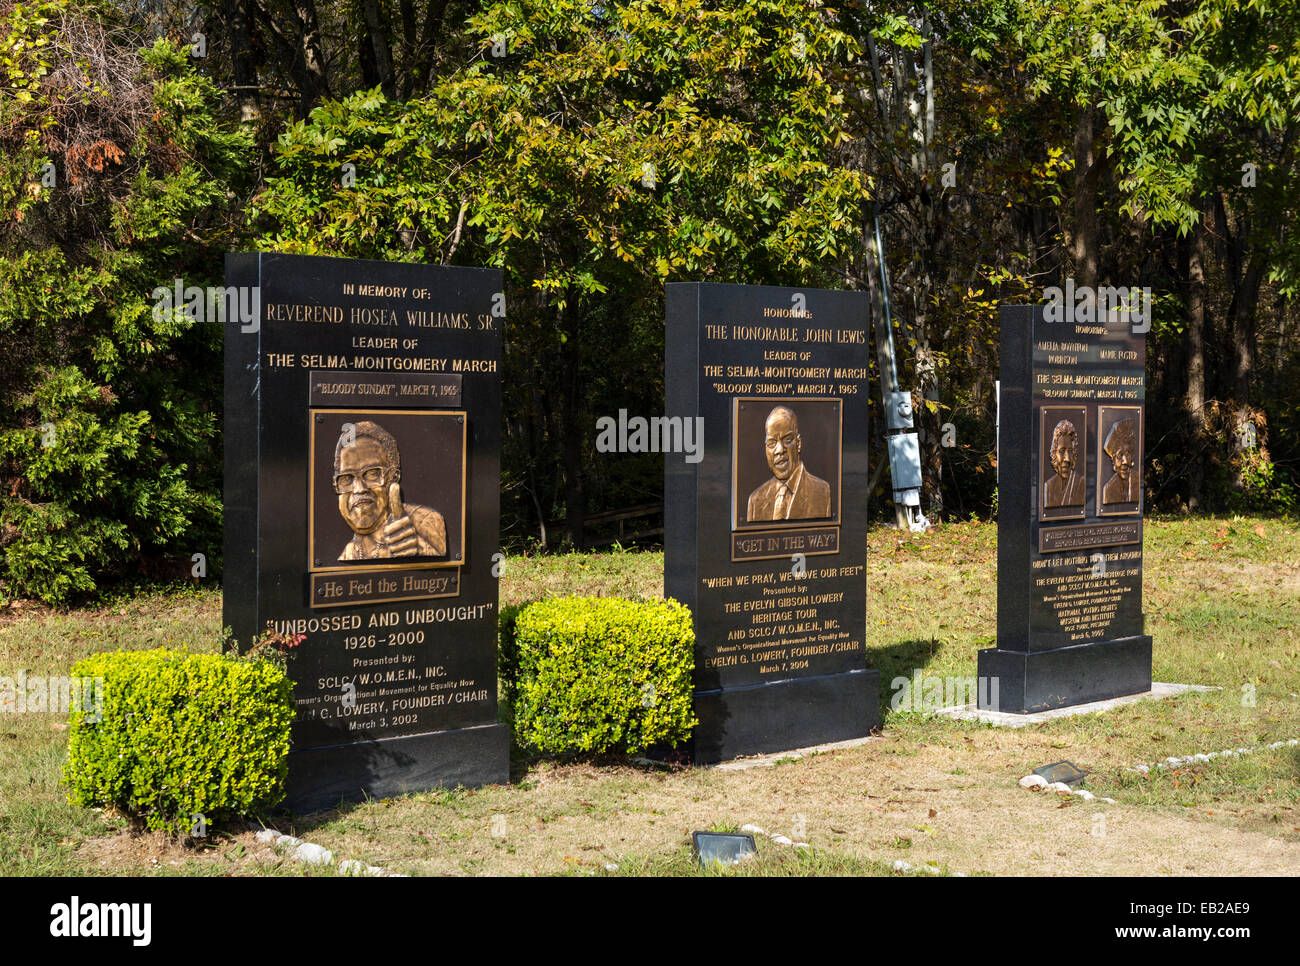 Memorials honoring leaders of the 'Bloody Sunday' March on 7th March 1965, Selma, Alabama, USA - Stock Image